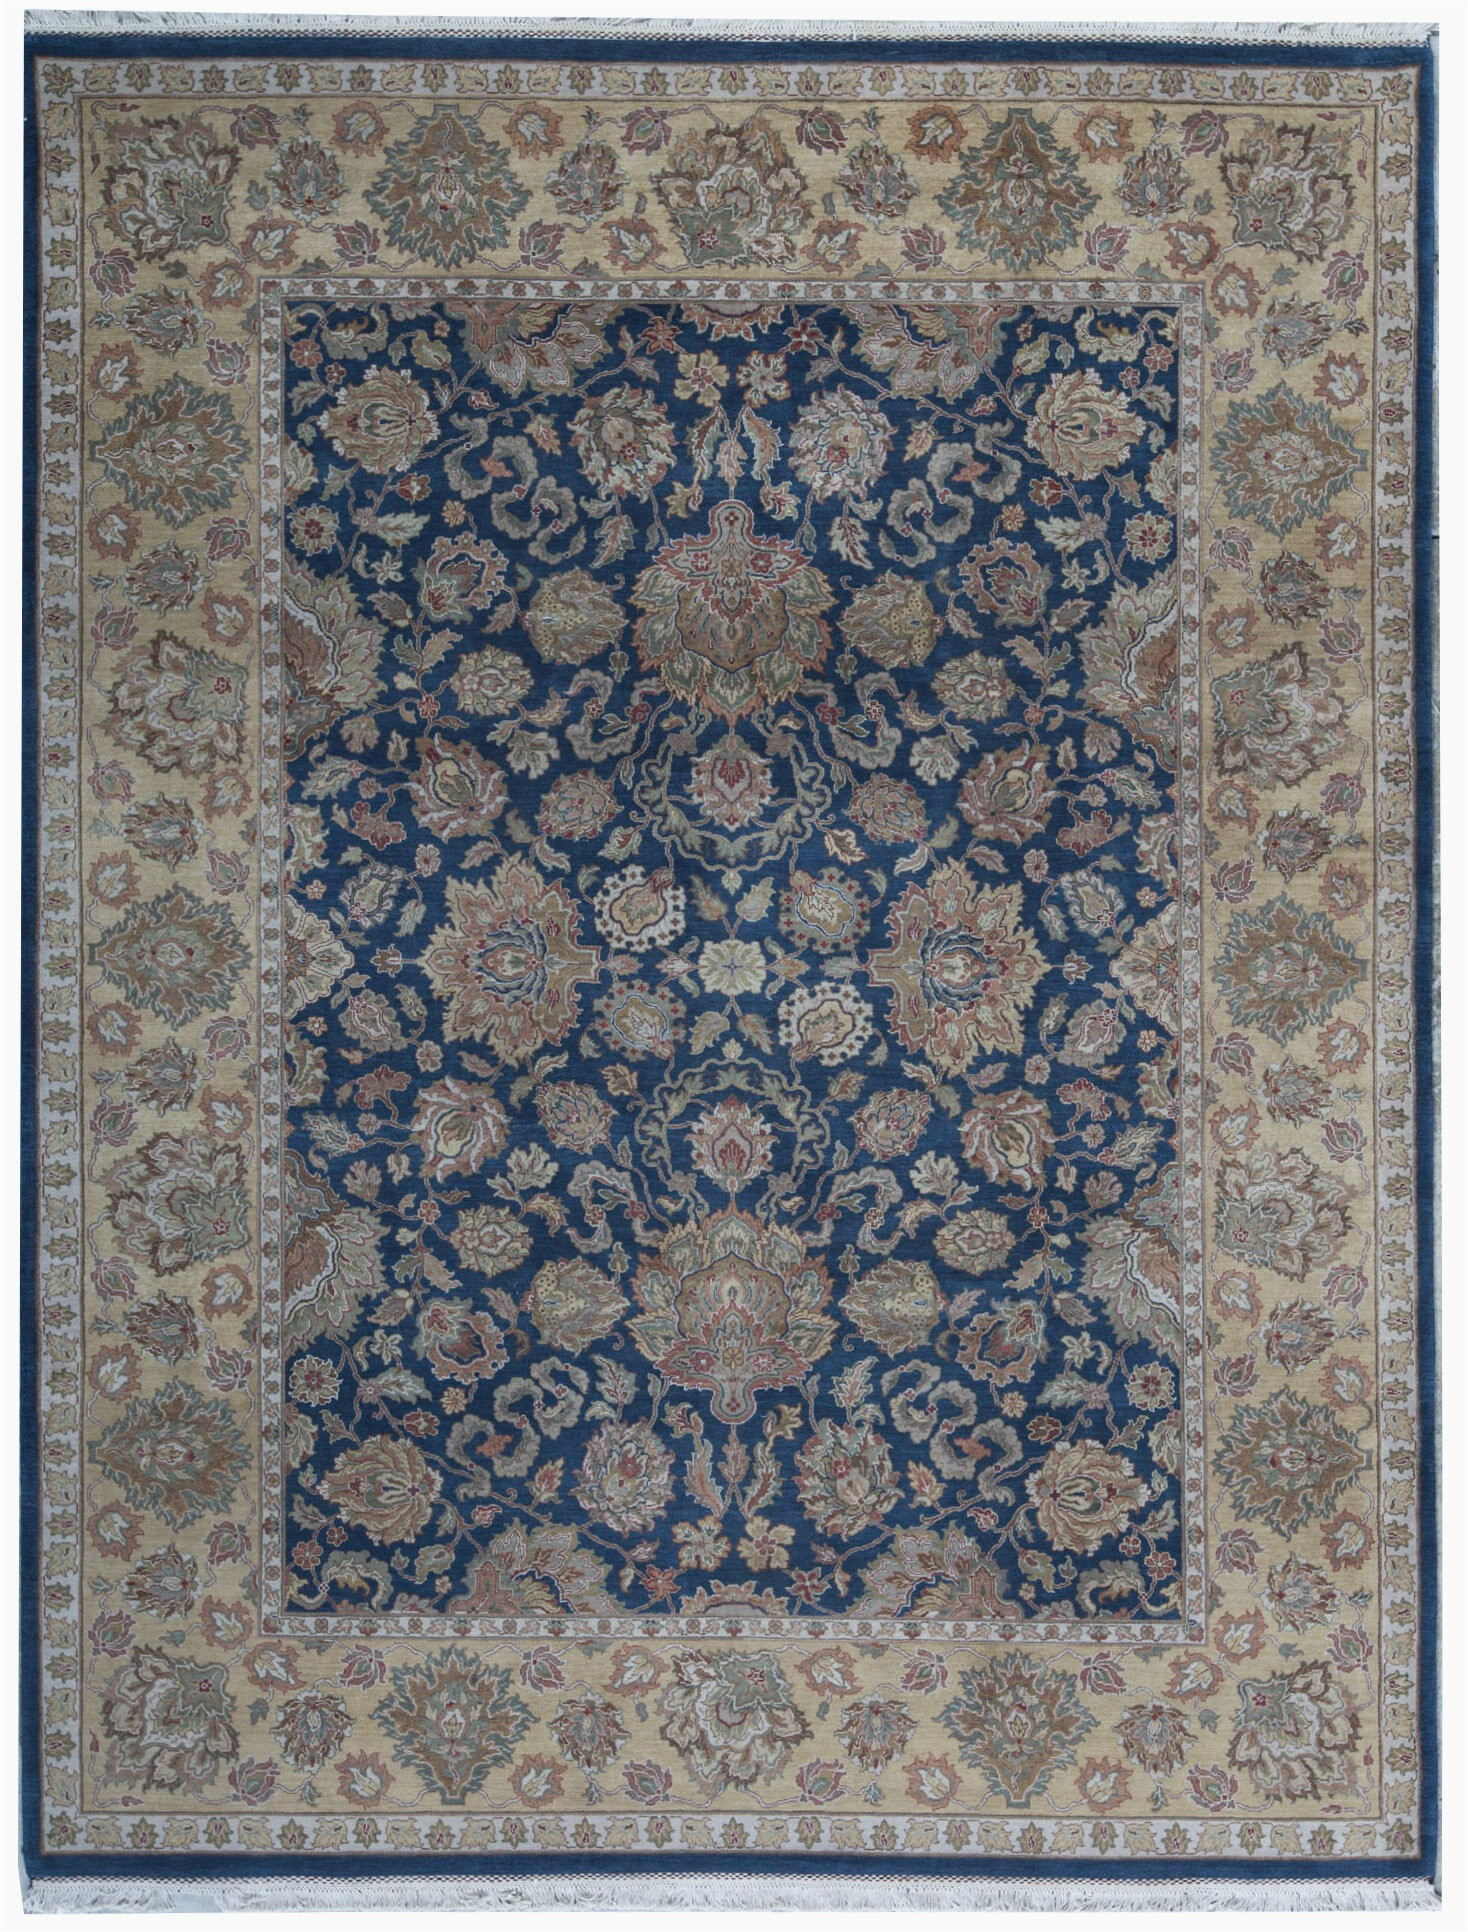 bokara rug co inc one of a kind king hand knotted bluegold 92 x 1110 wool area rug abhd4812